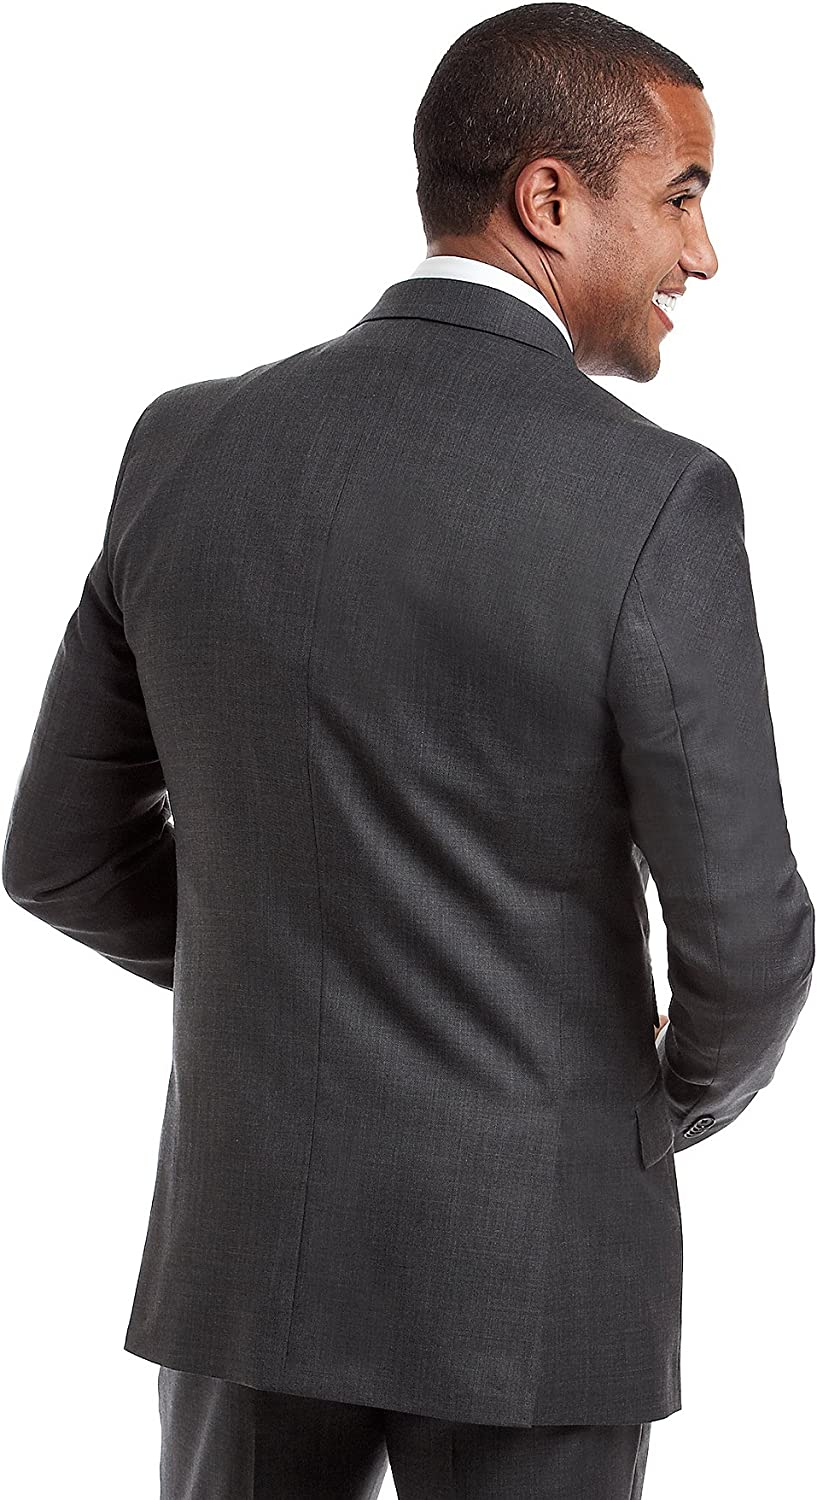 Kenneth Cole New York Men's Performance Wool Suit Separates-Custom Jacket and Pant Selection, Charcoal, 44 Regular